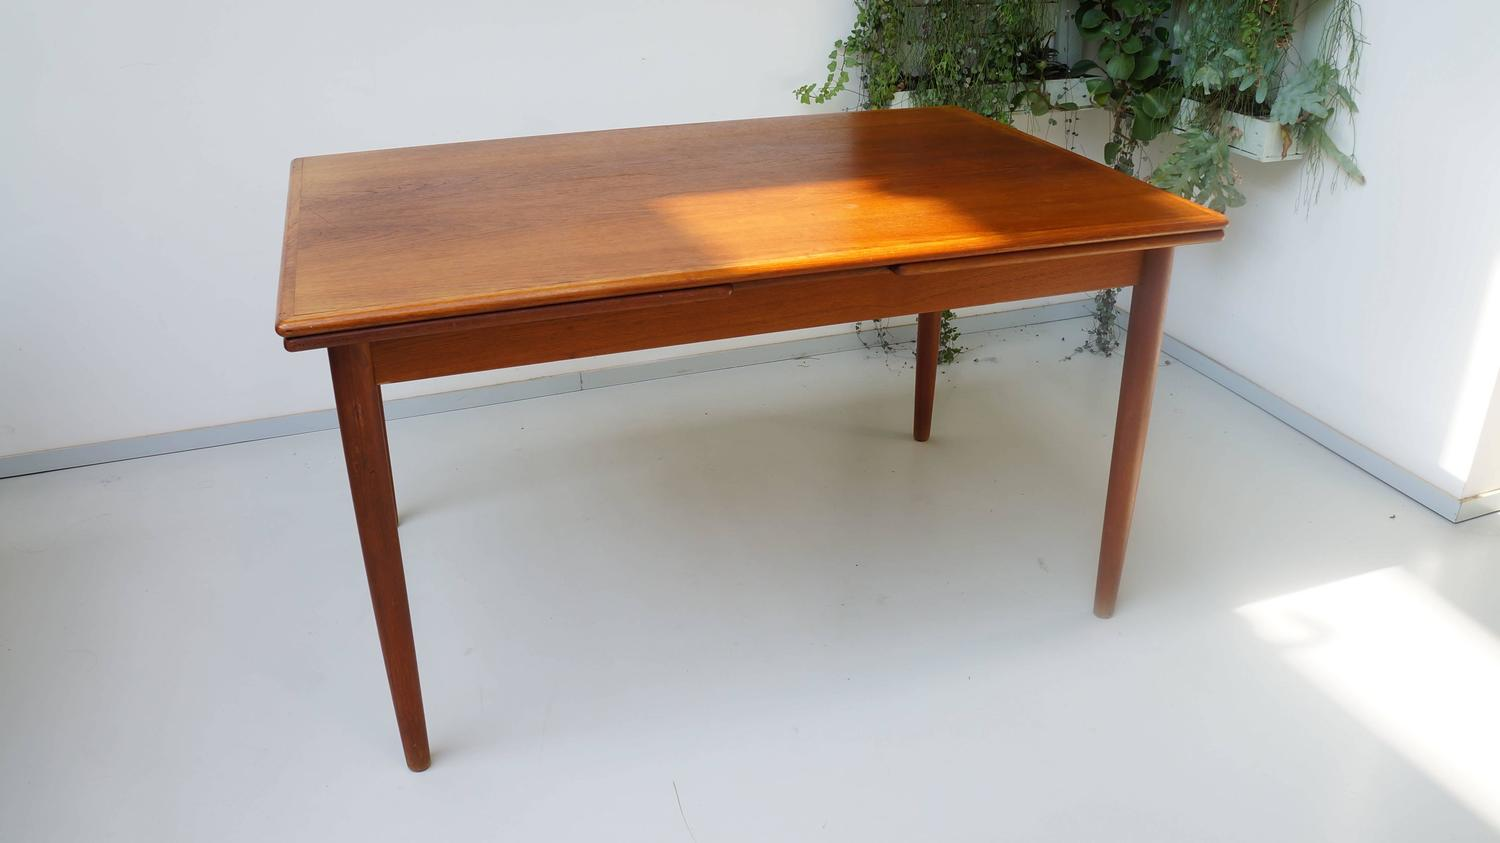 Scandinavian Danish Modern 1950s Rectangular Teak Wooden Dining Table